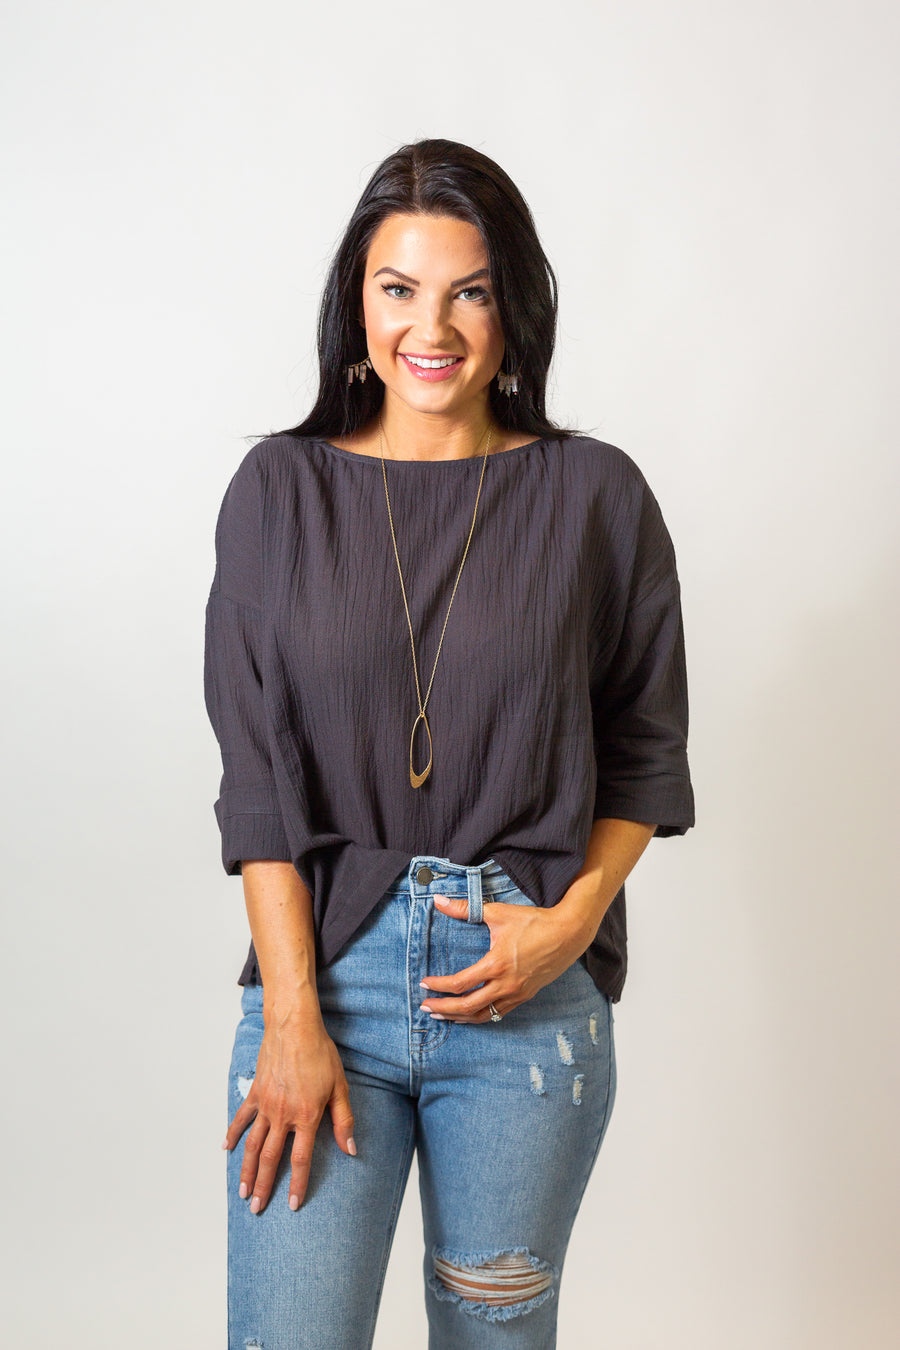 Mid-length sleeves attach to a wide u-neckline on an oversized and loose bodice silhouette. Style this lightweight autumn top with printed pants, pointed flats, a pendant necklace.